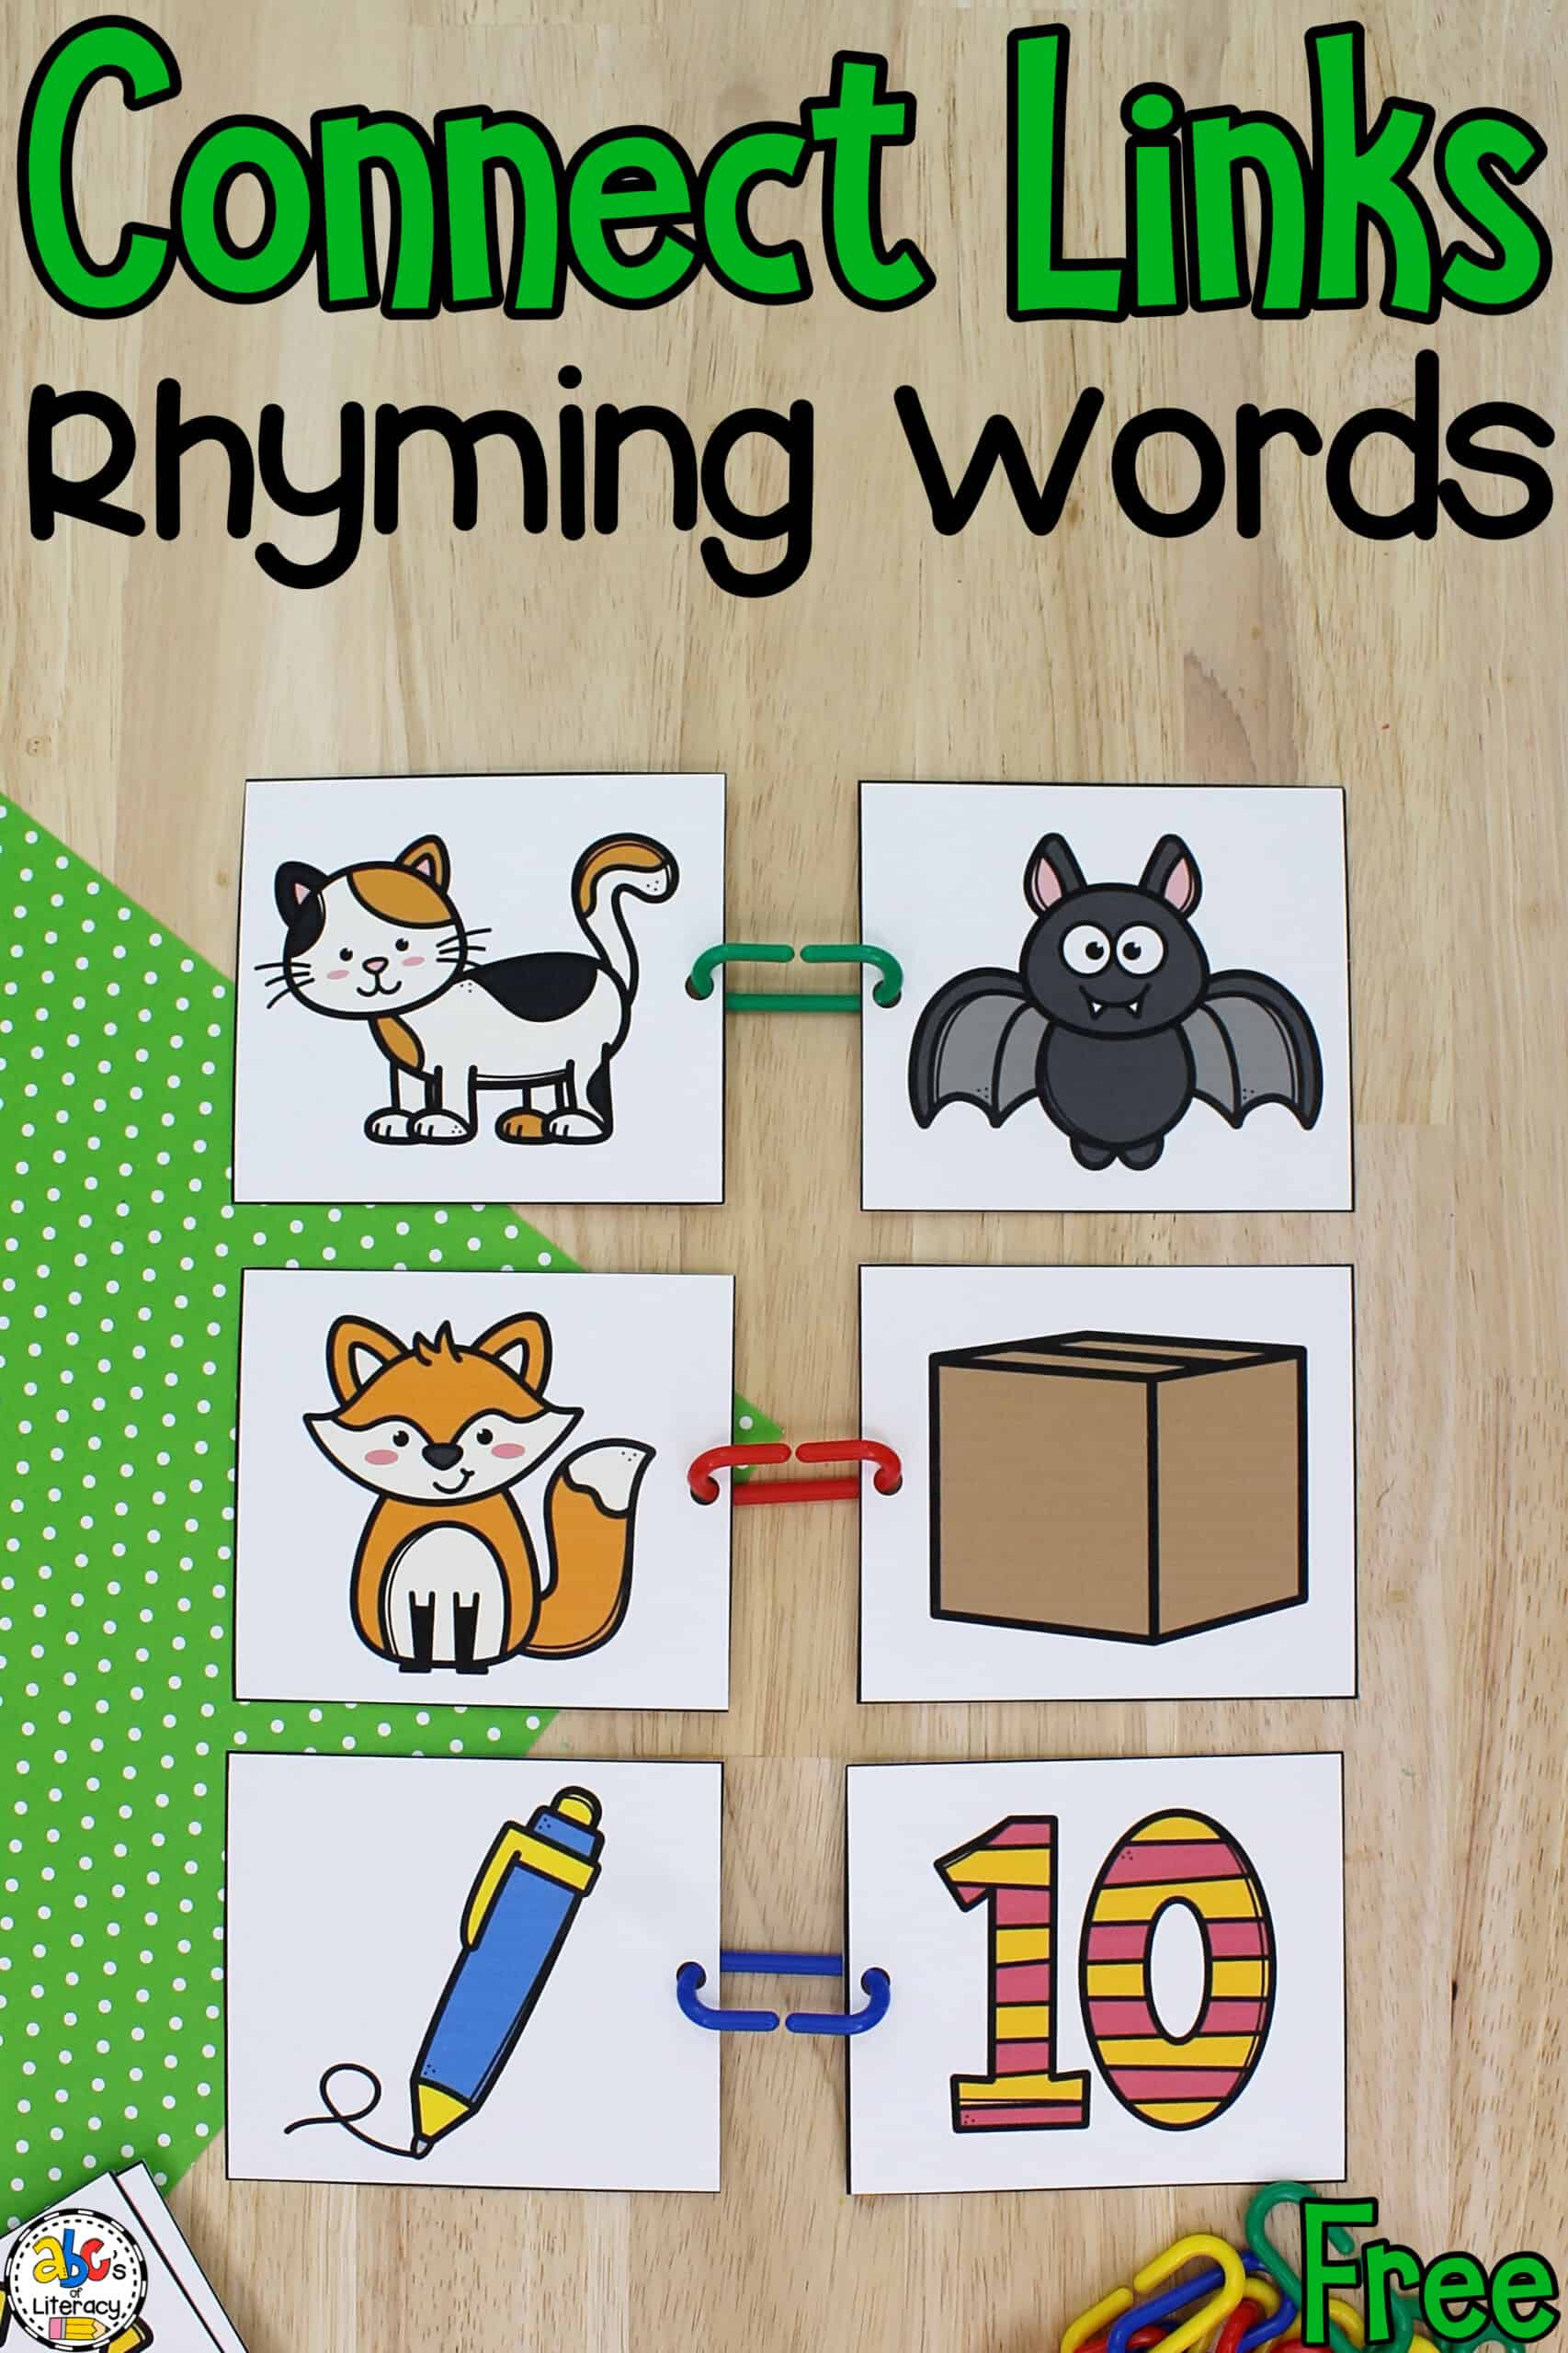 Connect Links Rhyming Words